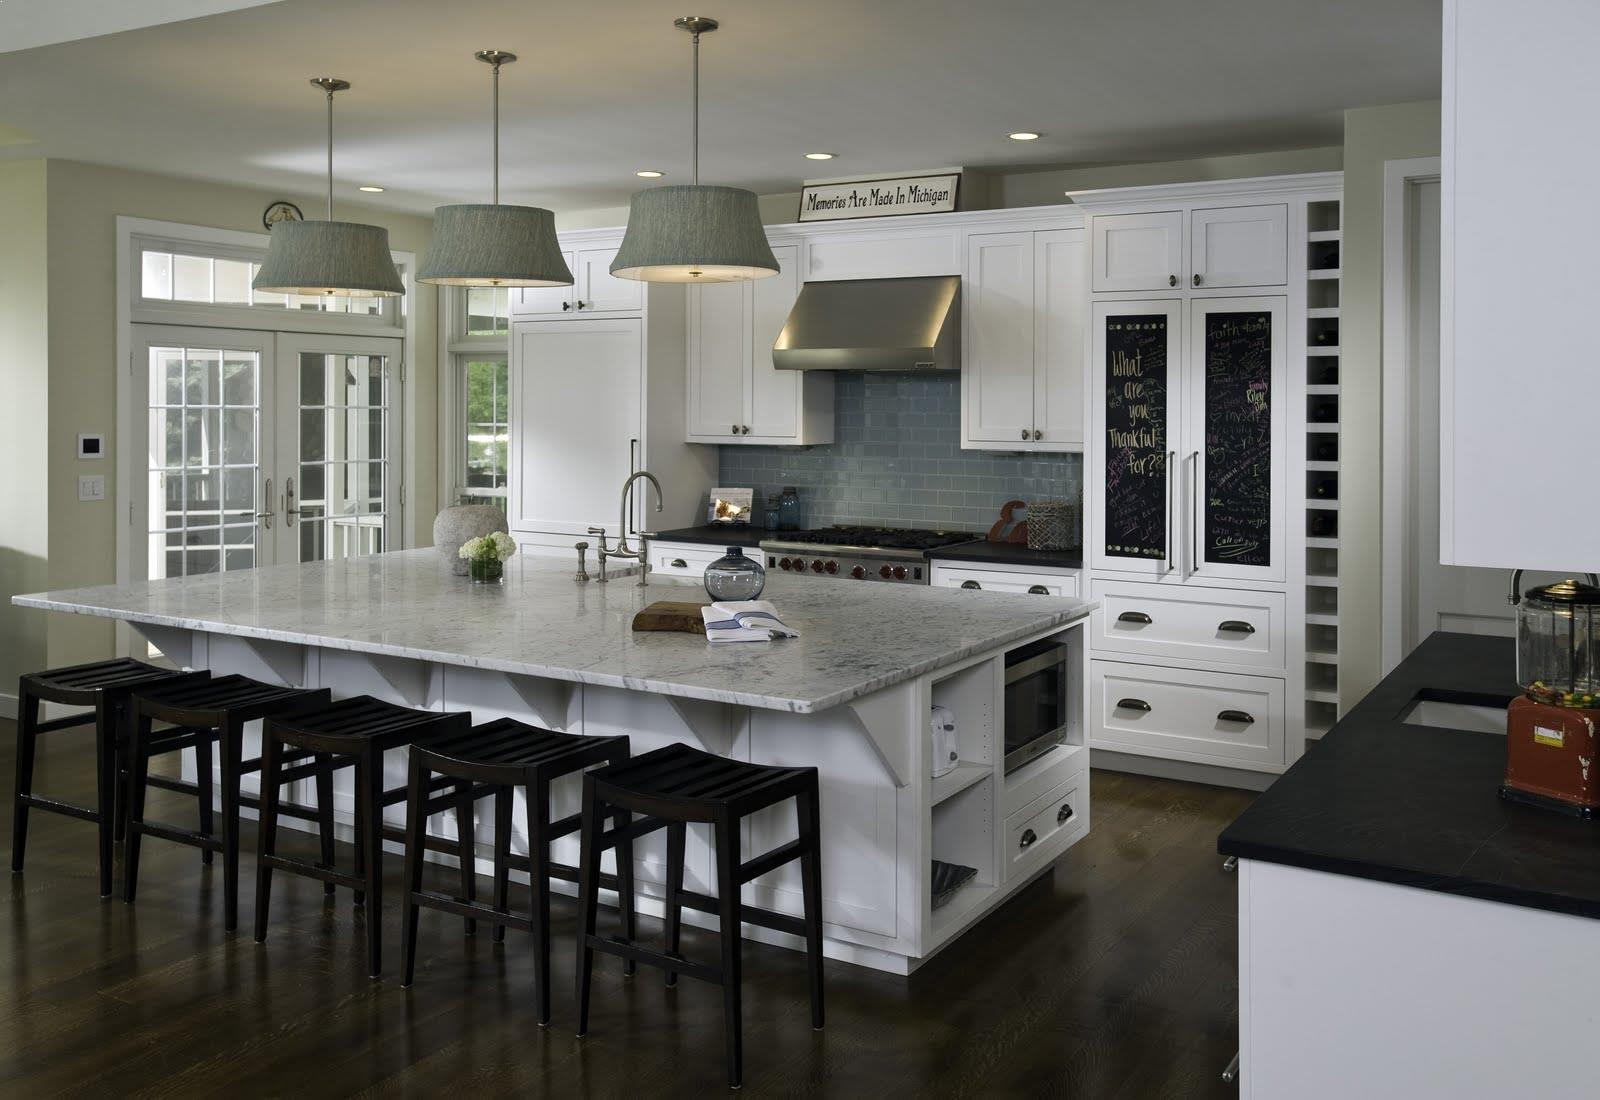 √√ Large KITCHEN ISLANDS with Seating and Storage ...